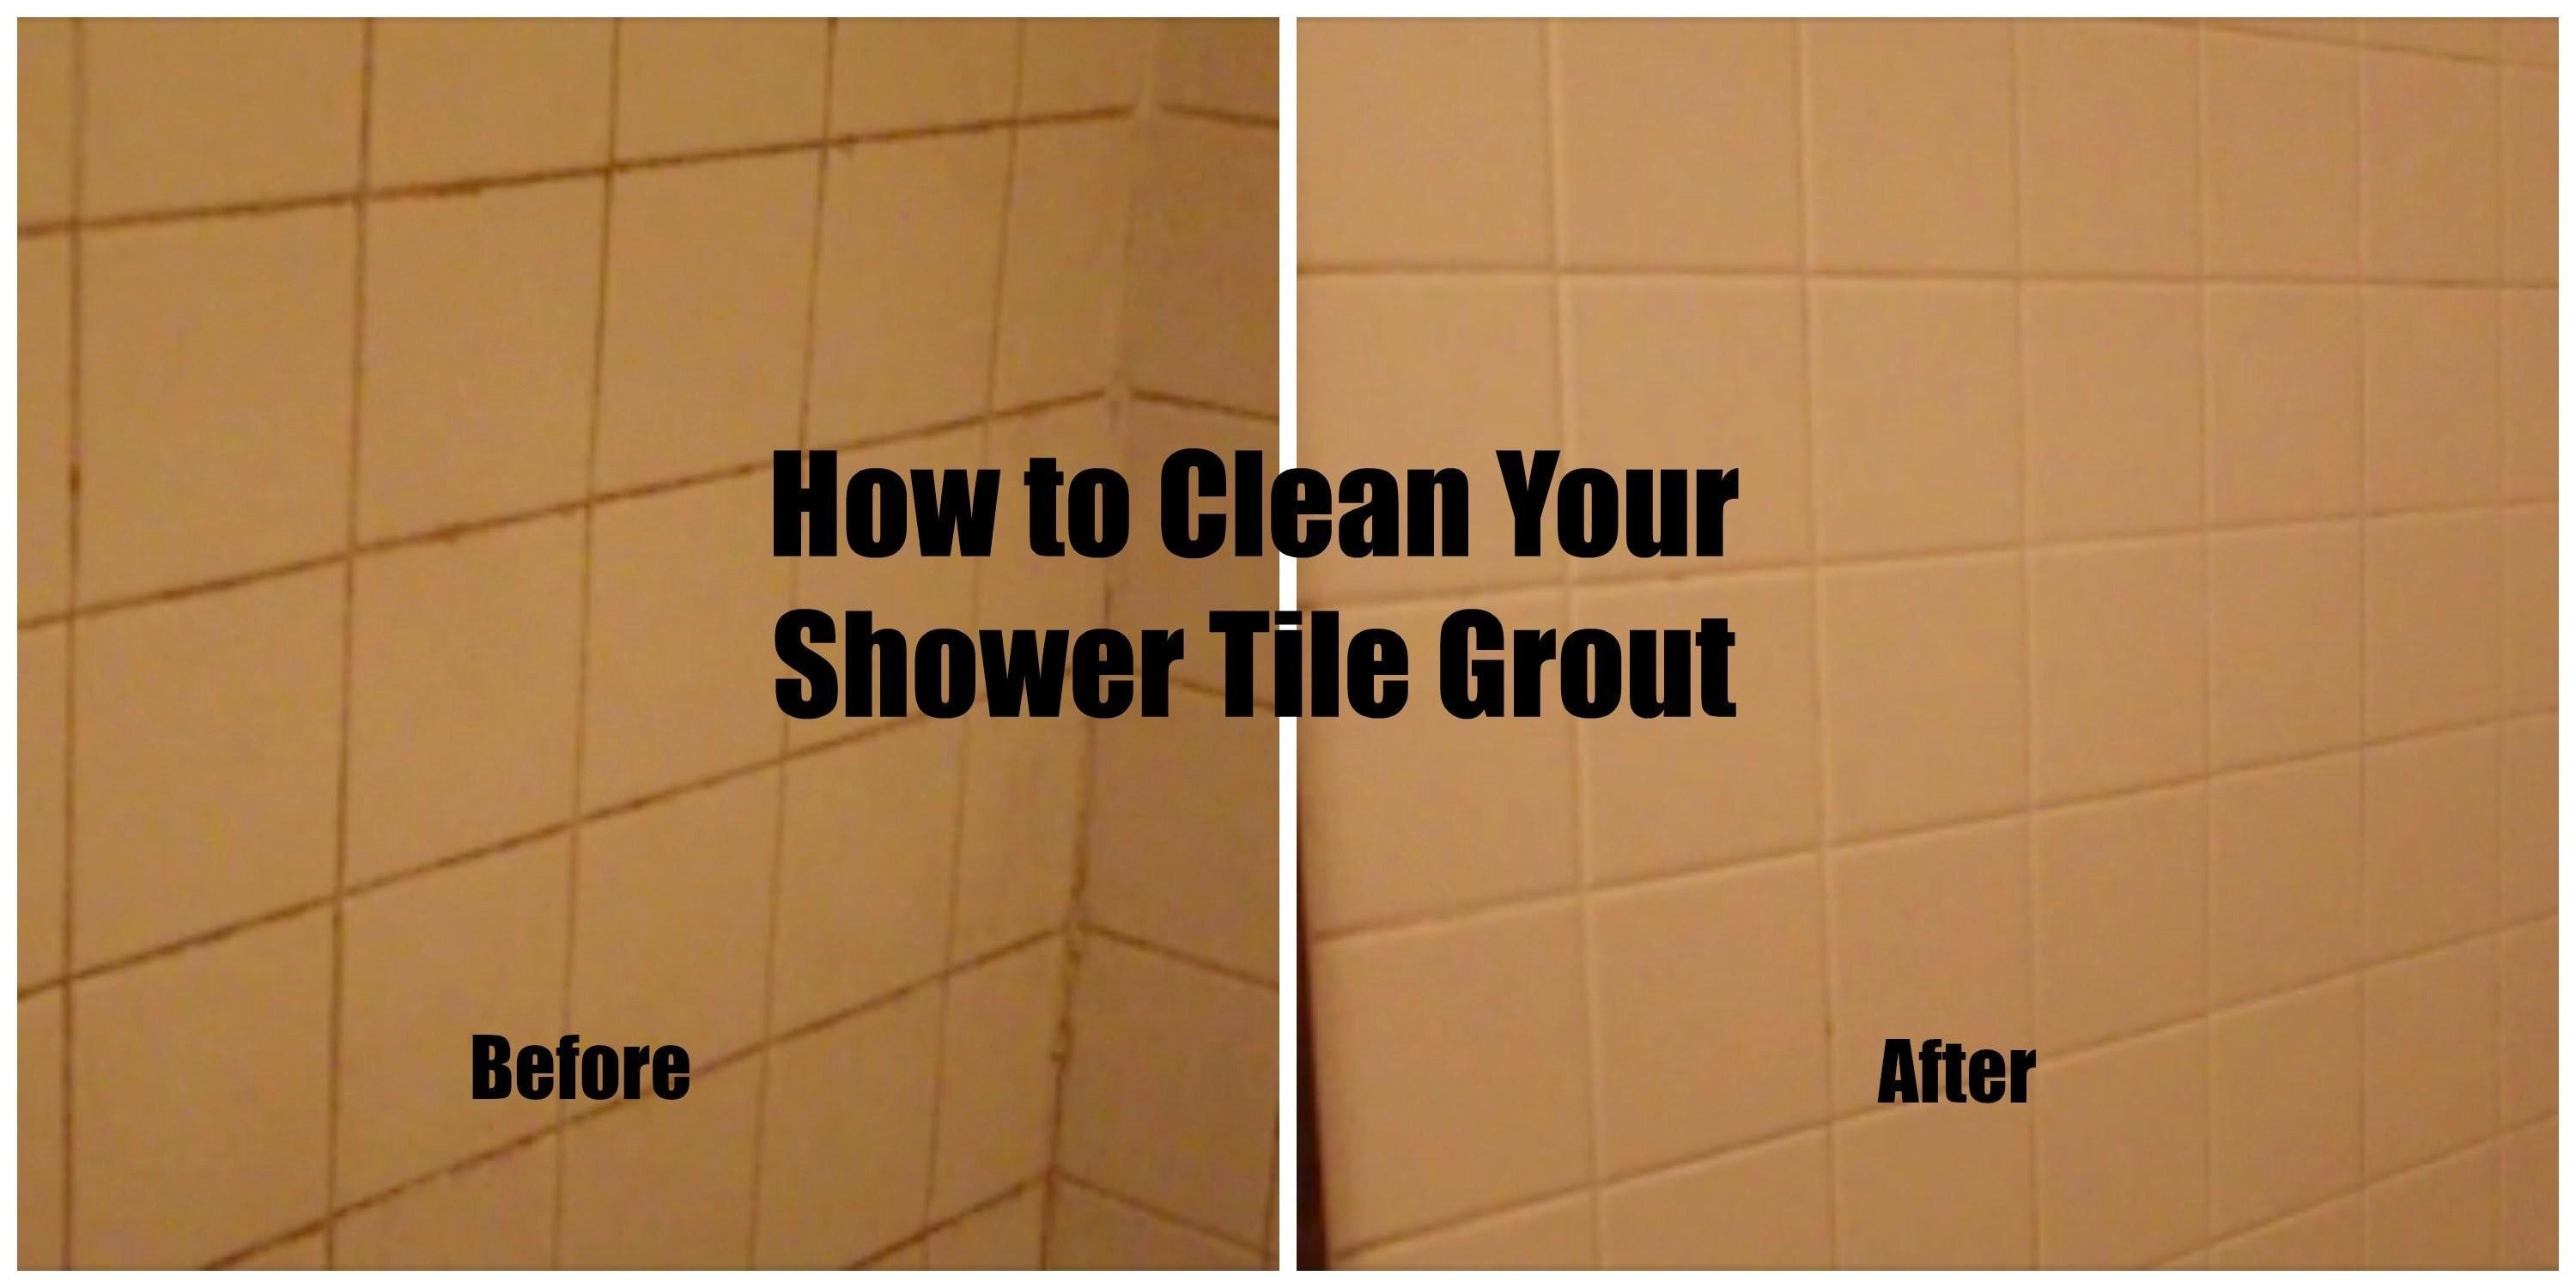 Budget Spring Cleaning Diy Clean Your Shower Tile